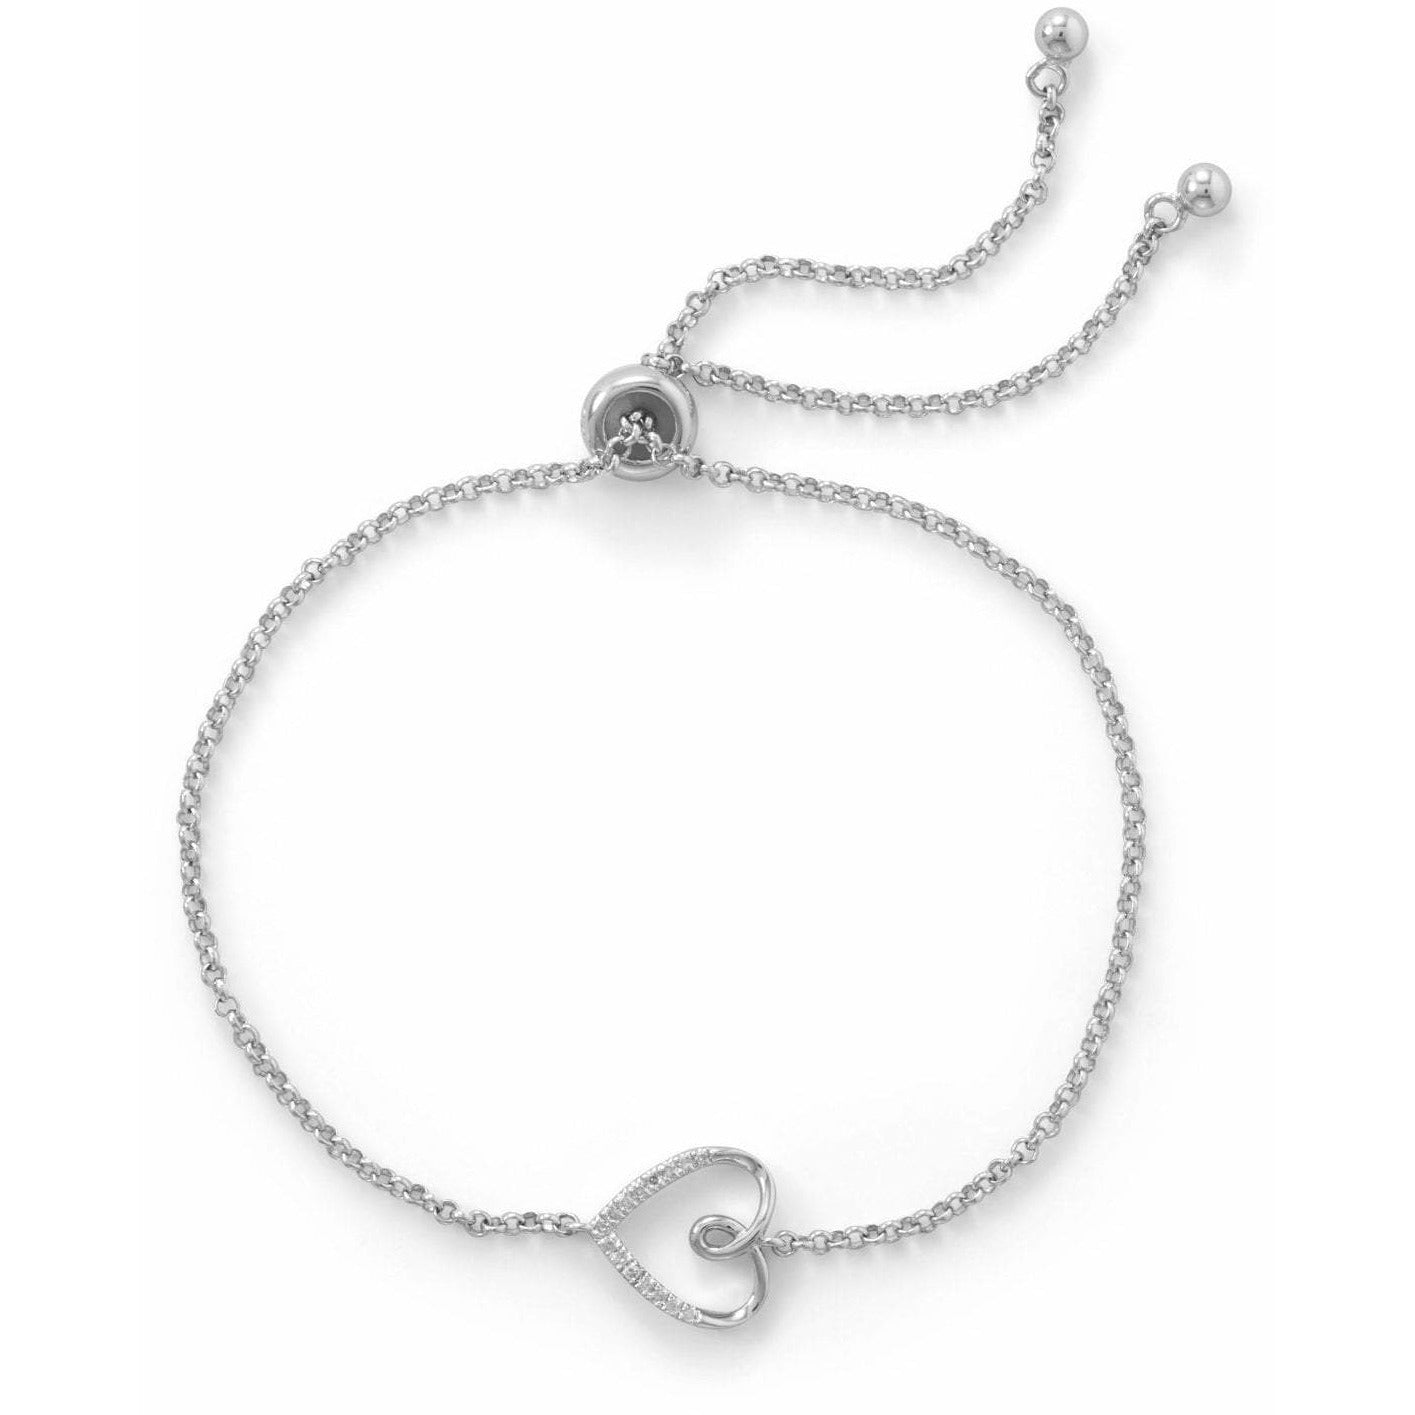 Rhodium Plated Sideways Heart Bolo Bracelet with Diamonds